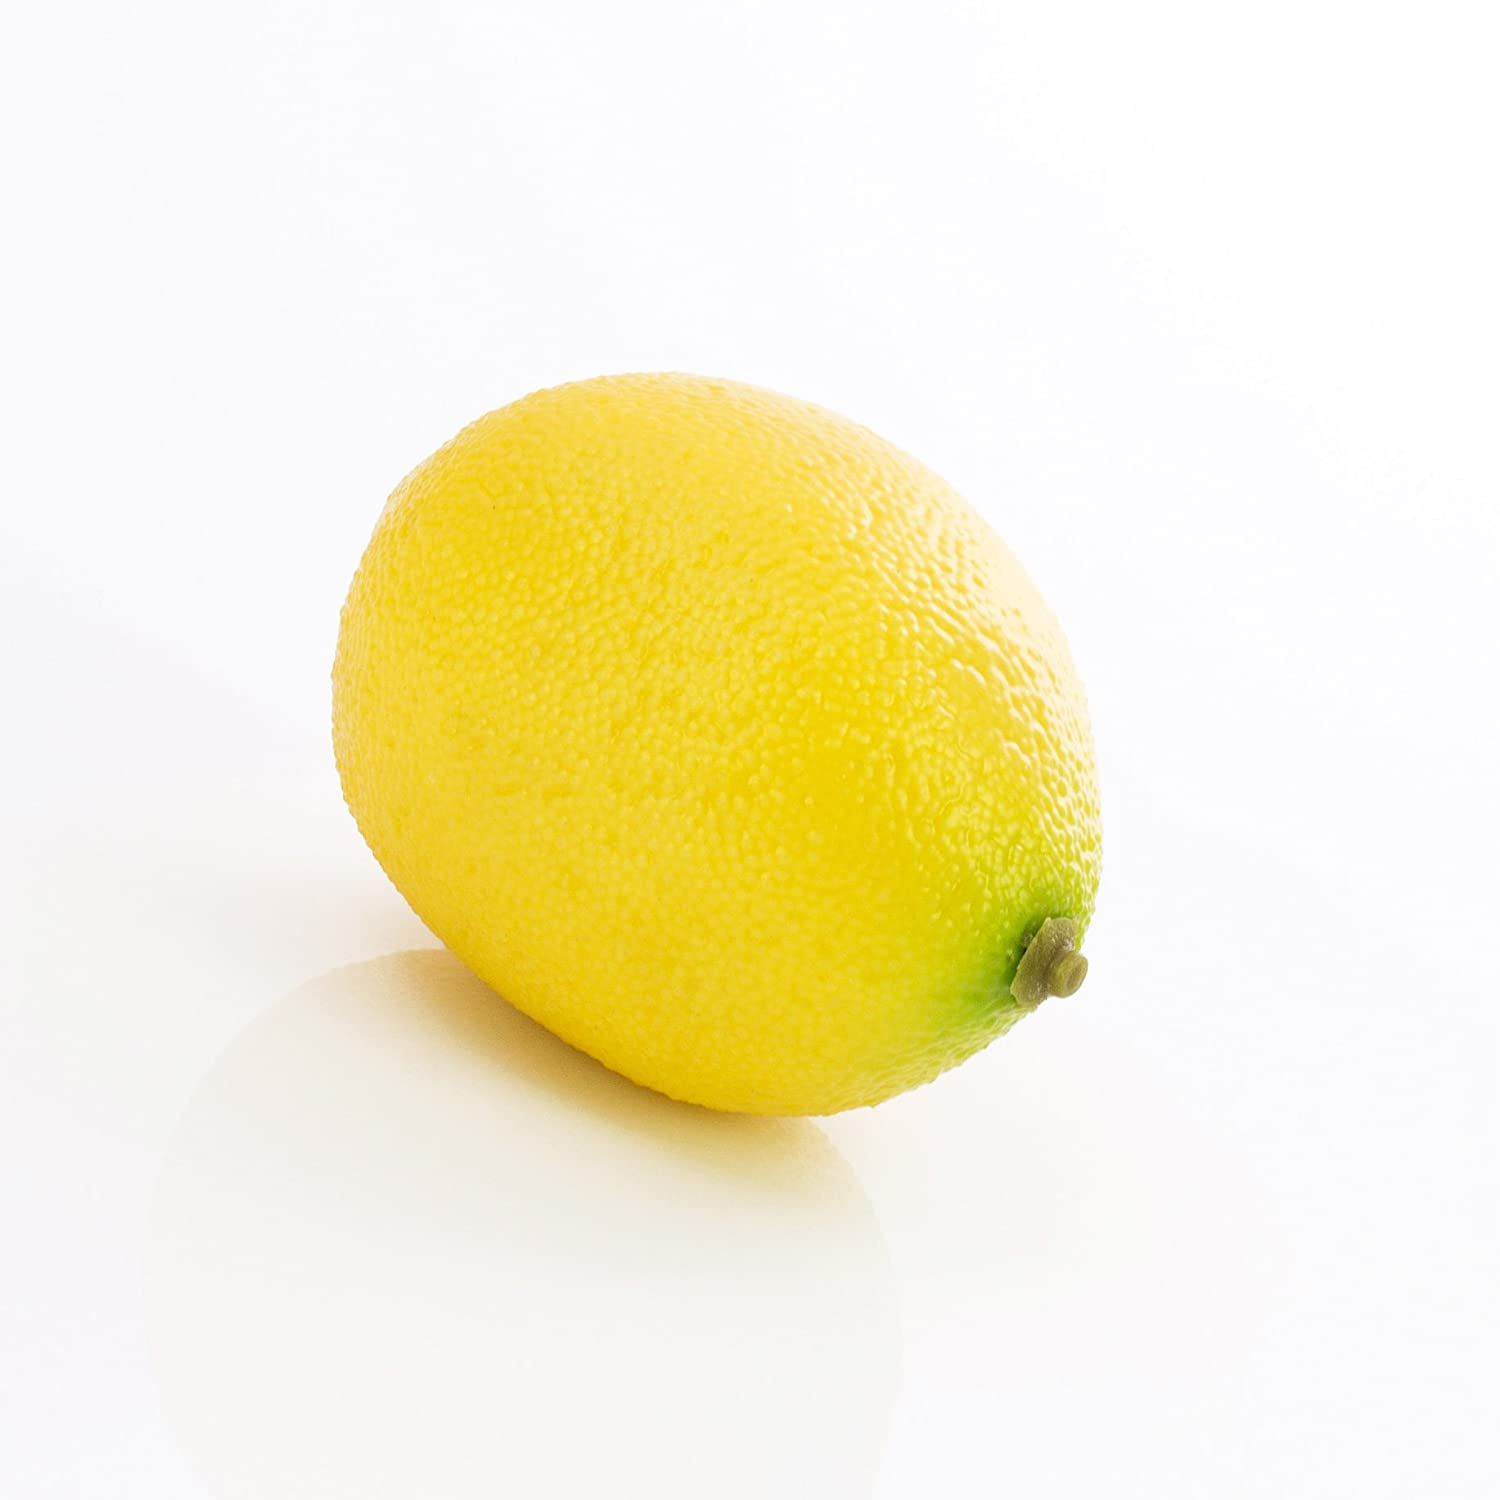 artplants Citron artificiel, jaune, 7 cm, Ø 5 cm - Fruit artificiel/Citron en plastique